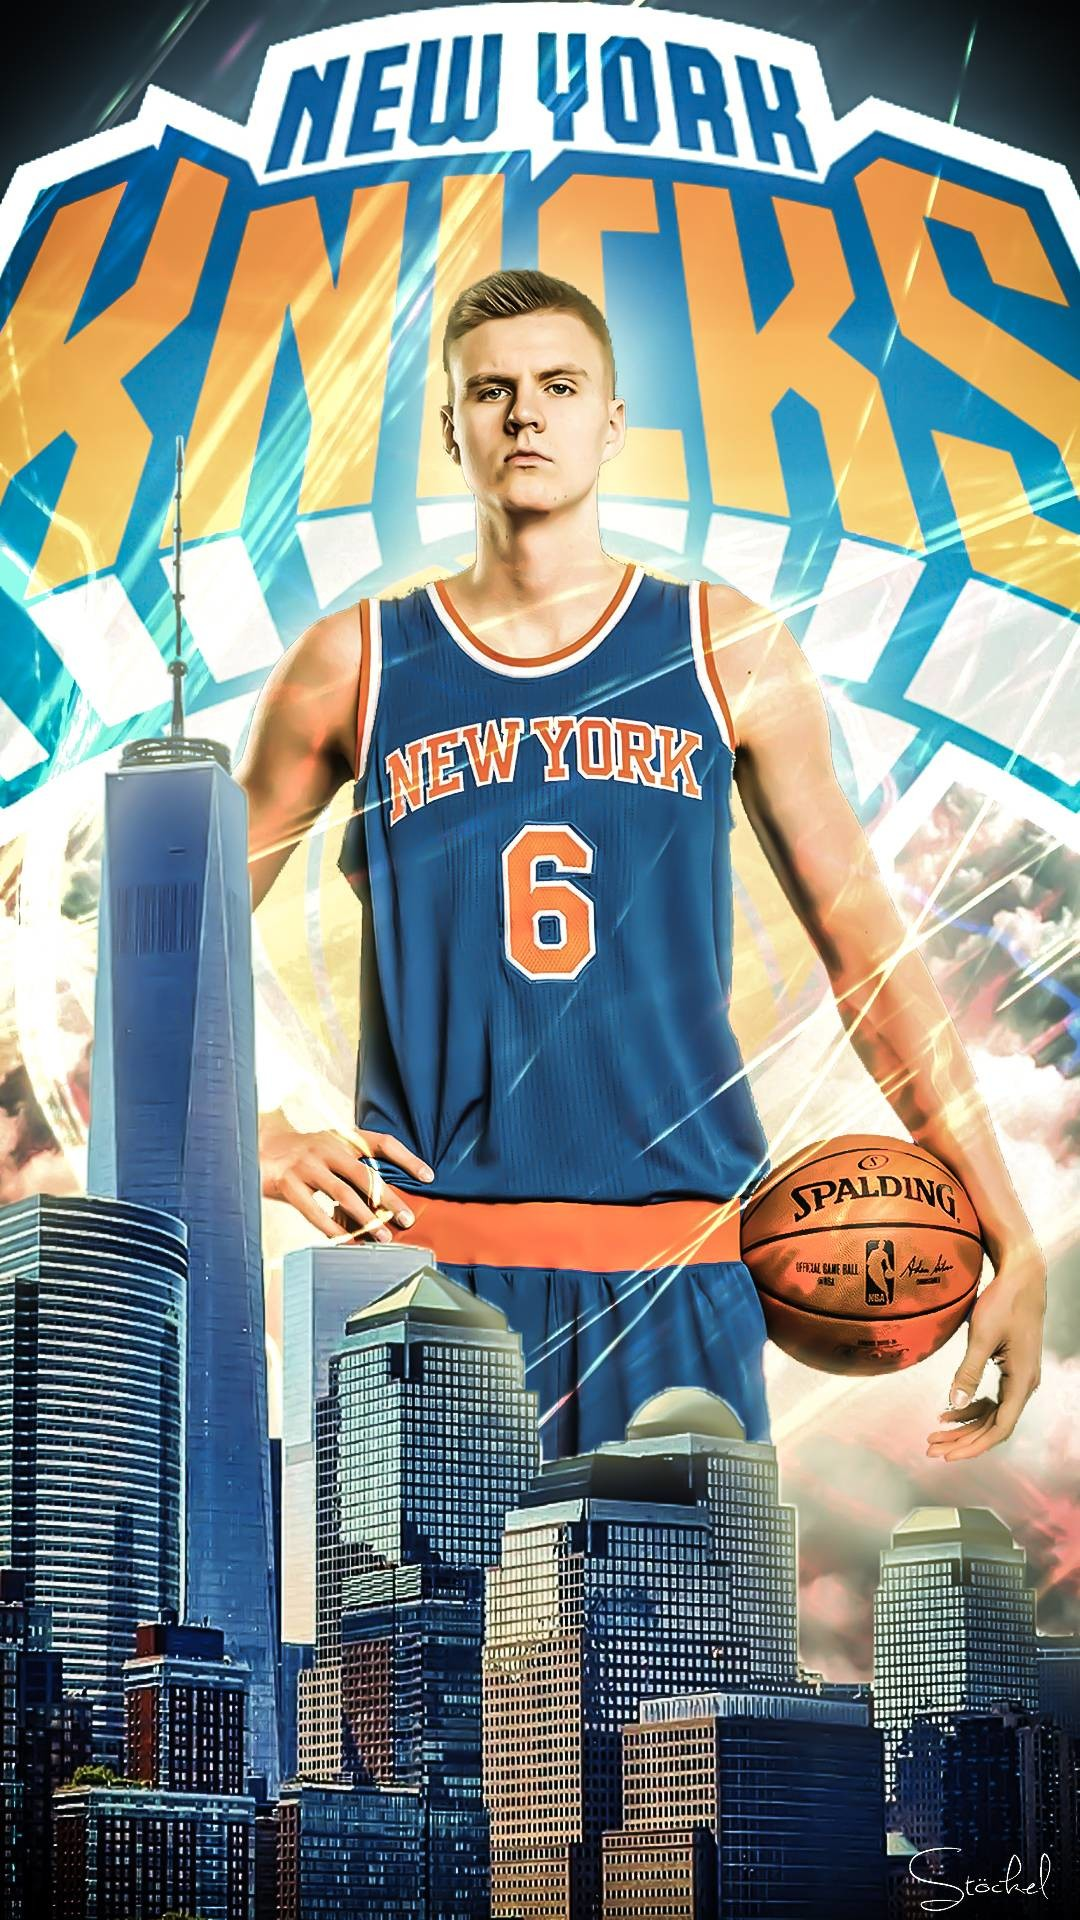 1080x1920 Made a Kristaps Porziņģis mobile wallpaper to celebrate the mobile giant in  NY. Lemme know if you want one for the other players too.